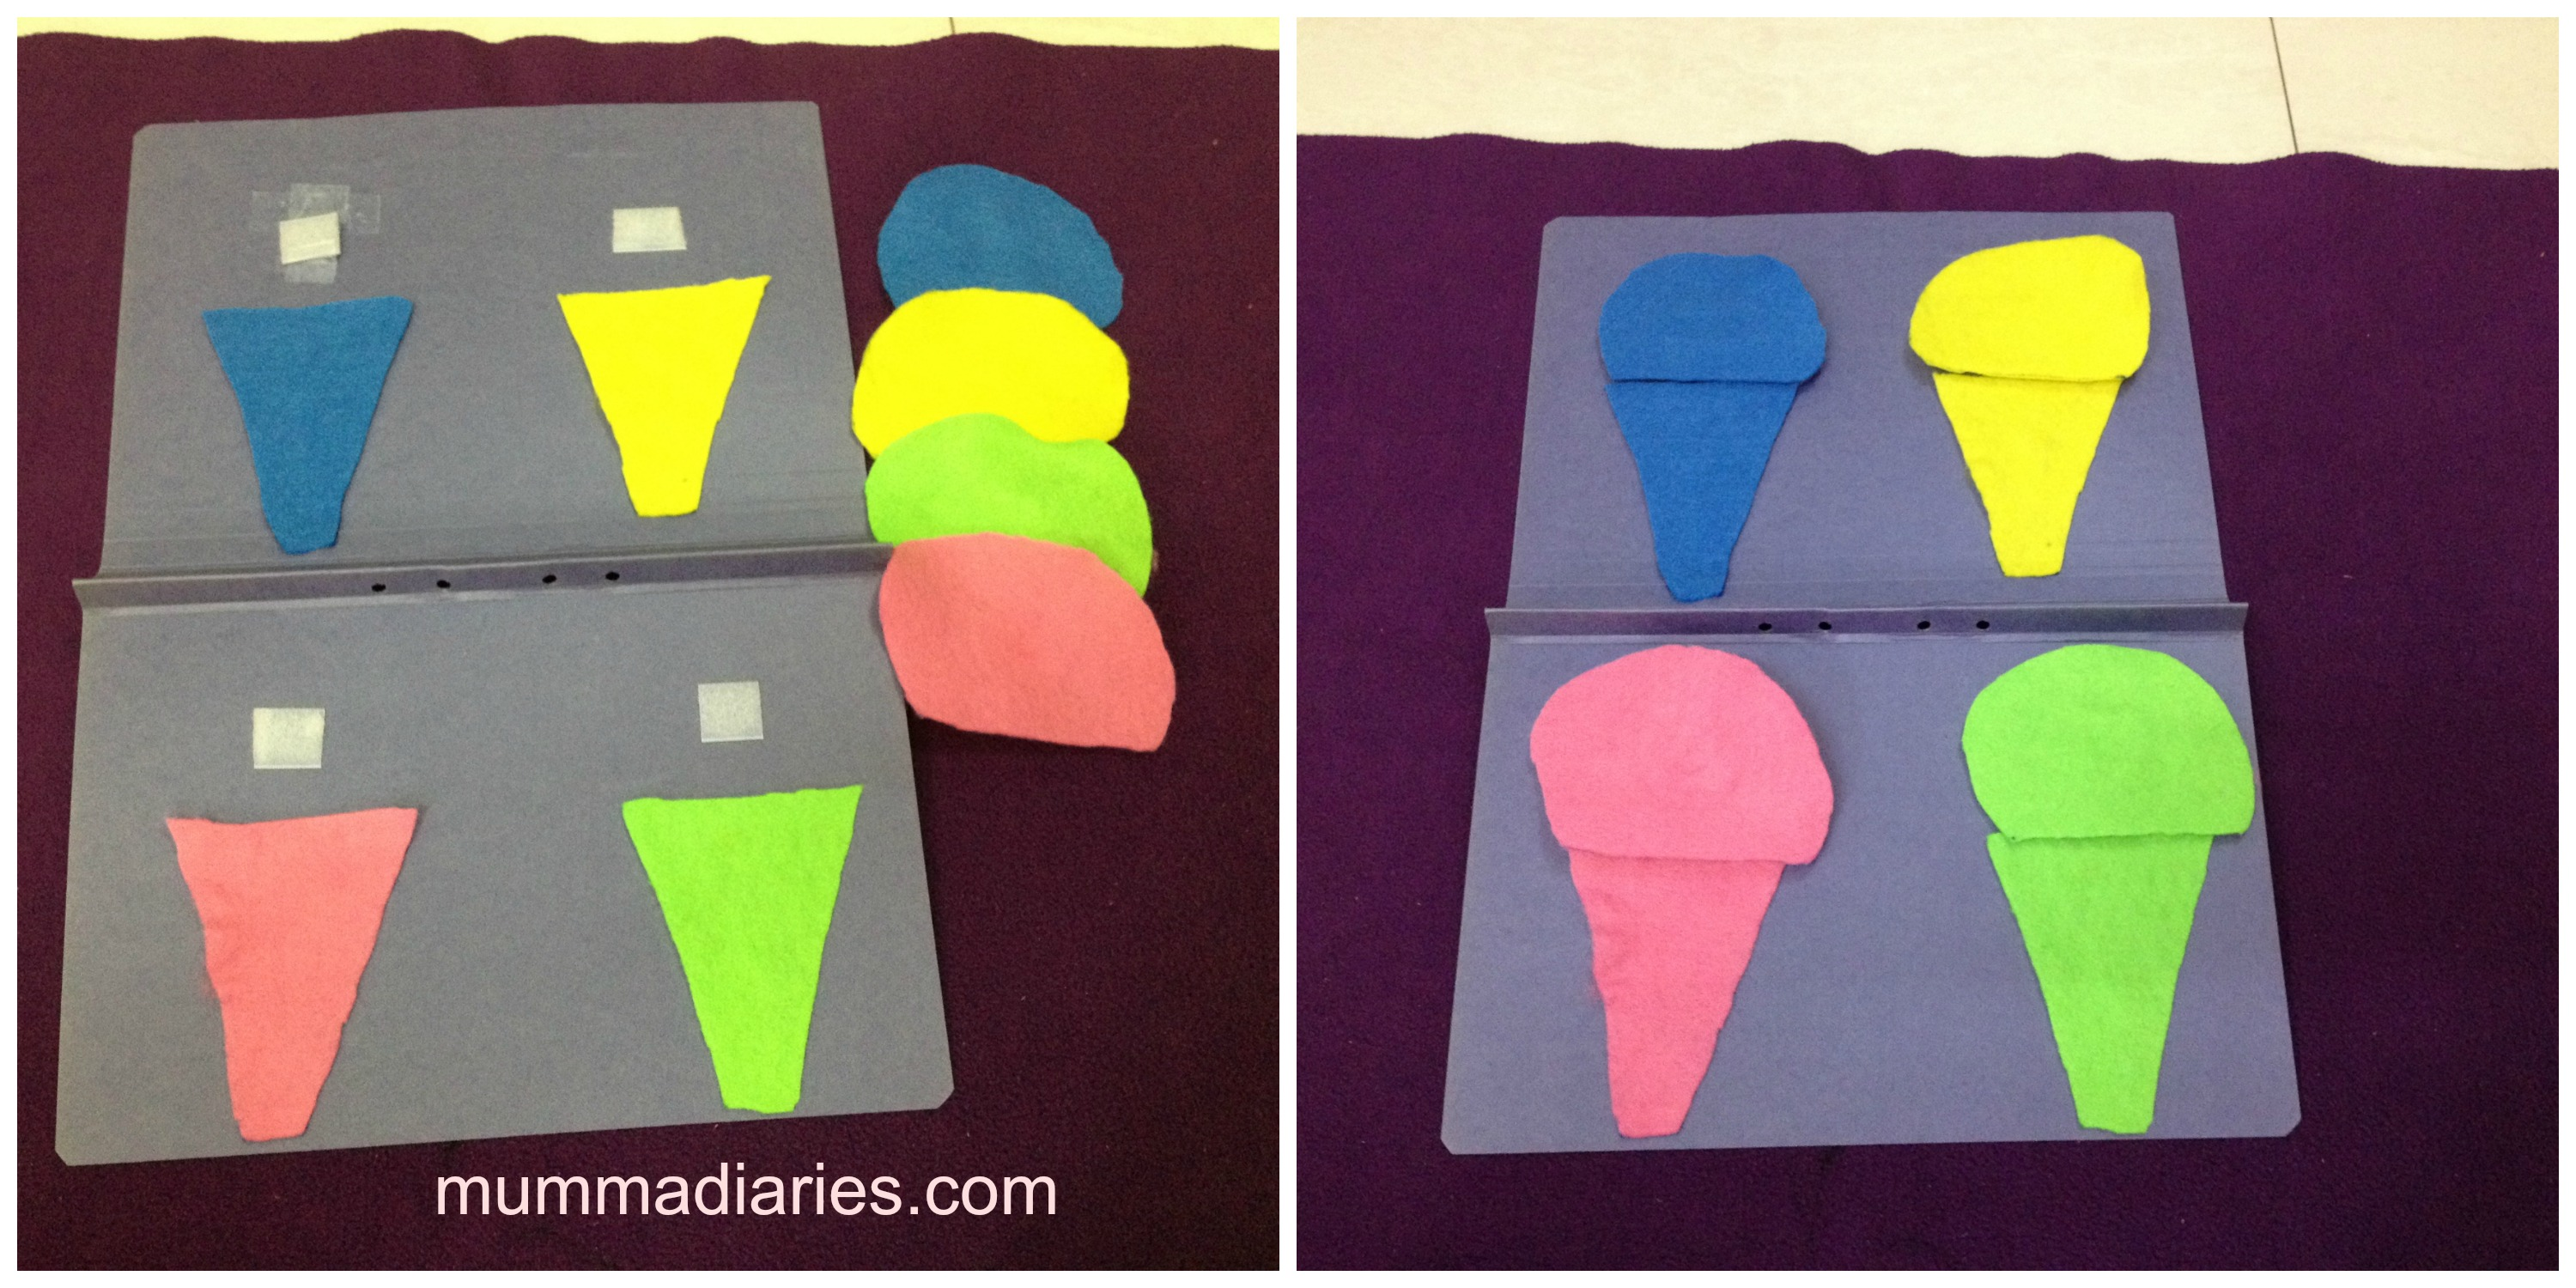 8 FUN ways to teach toddlers about shape and color matching